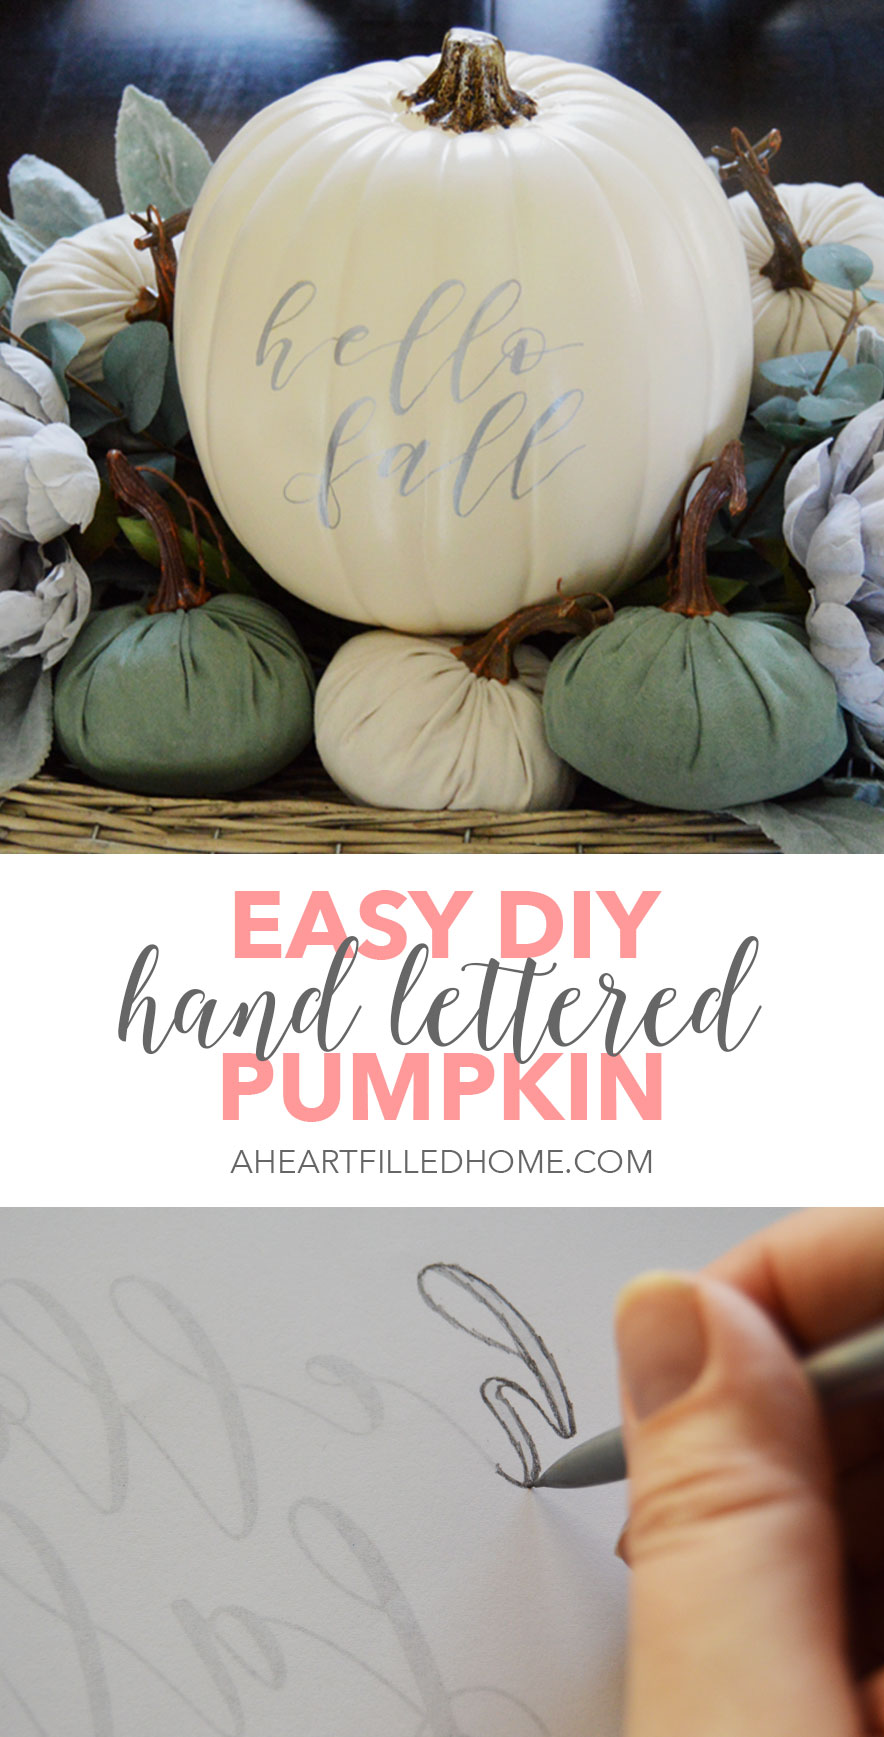 An Easy DIY Hand Lettered Pumpkin Tutorial from aheartfilledhome.com